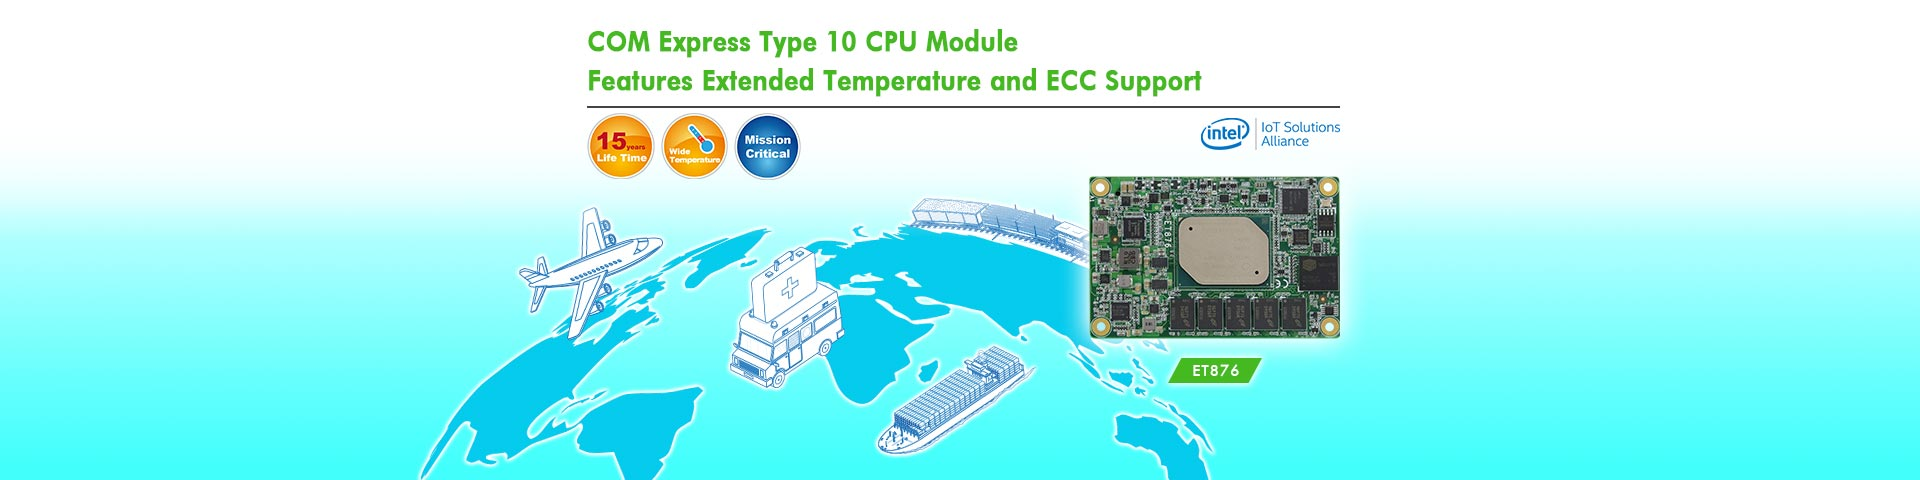 COM Express Type 10 CPU Module Features Extended Temperature and ECC Support